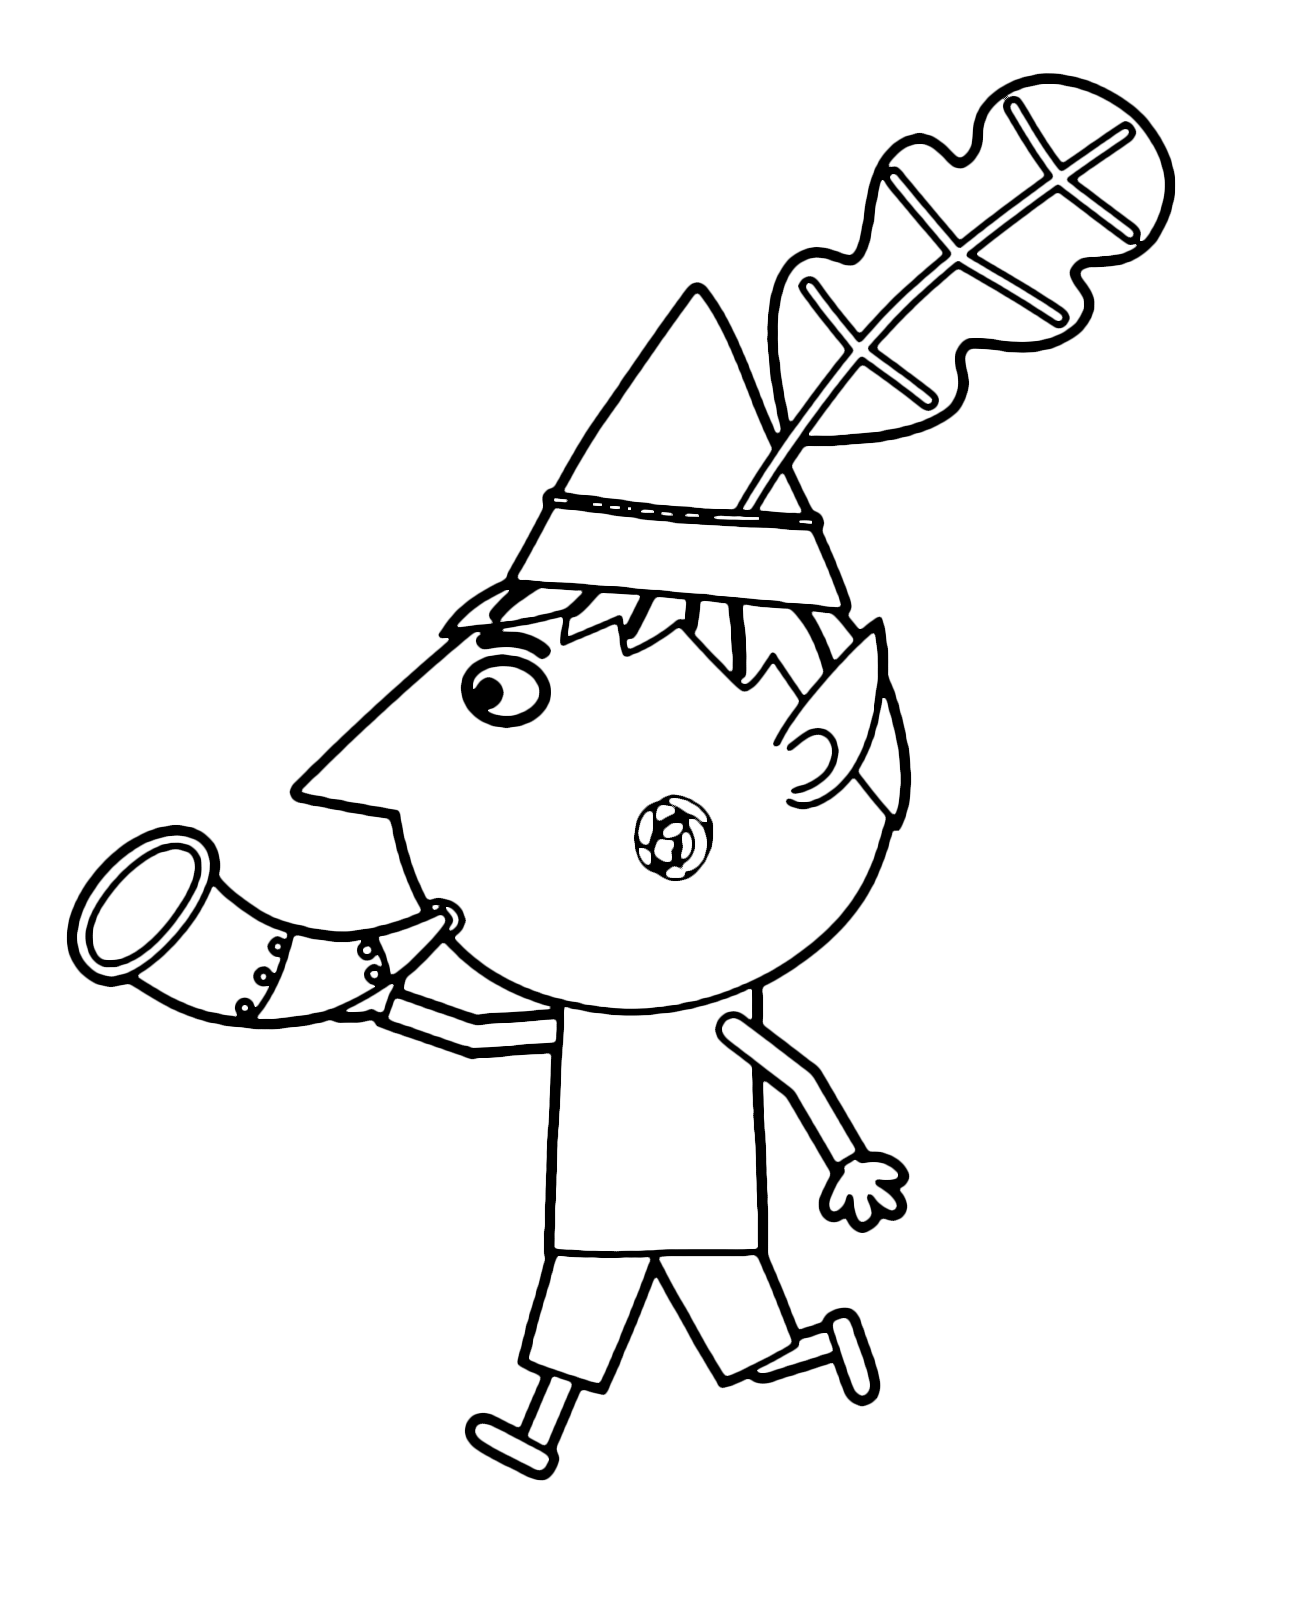 ben and holly coloring pages pdf ben and holly coloring pages at getdrawings free download coloring pdf holly and ben pages